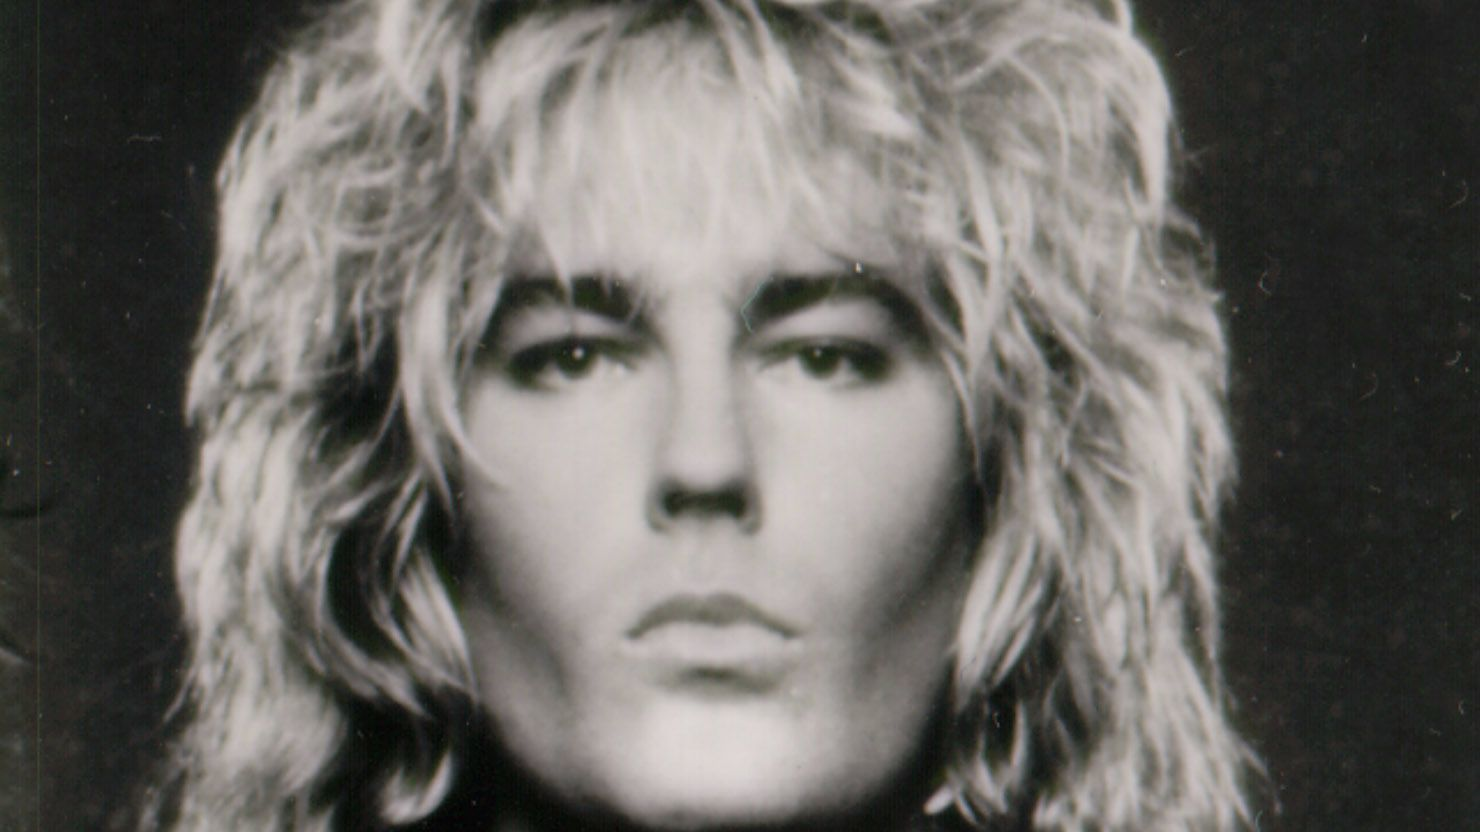 robbin crosby of san diego bred band ratt died 15 years ago at 42